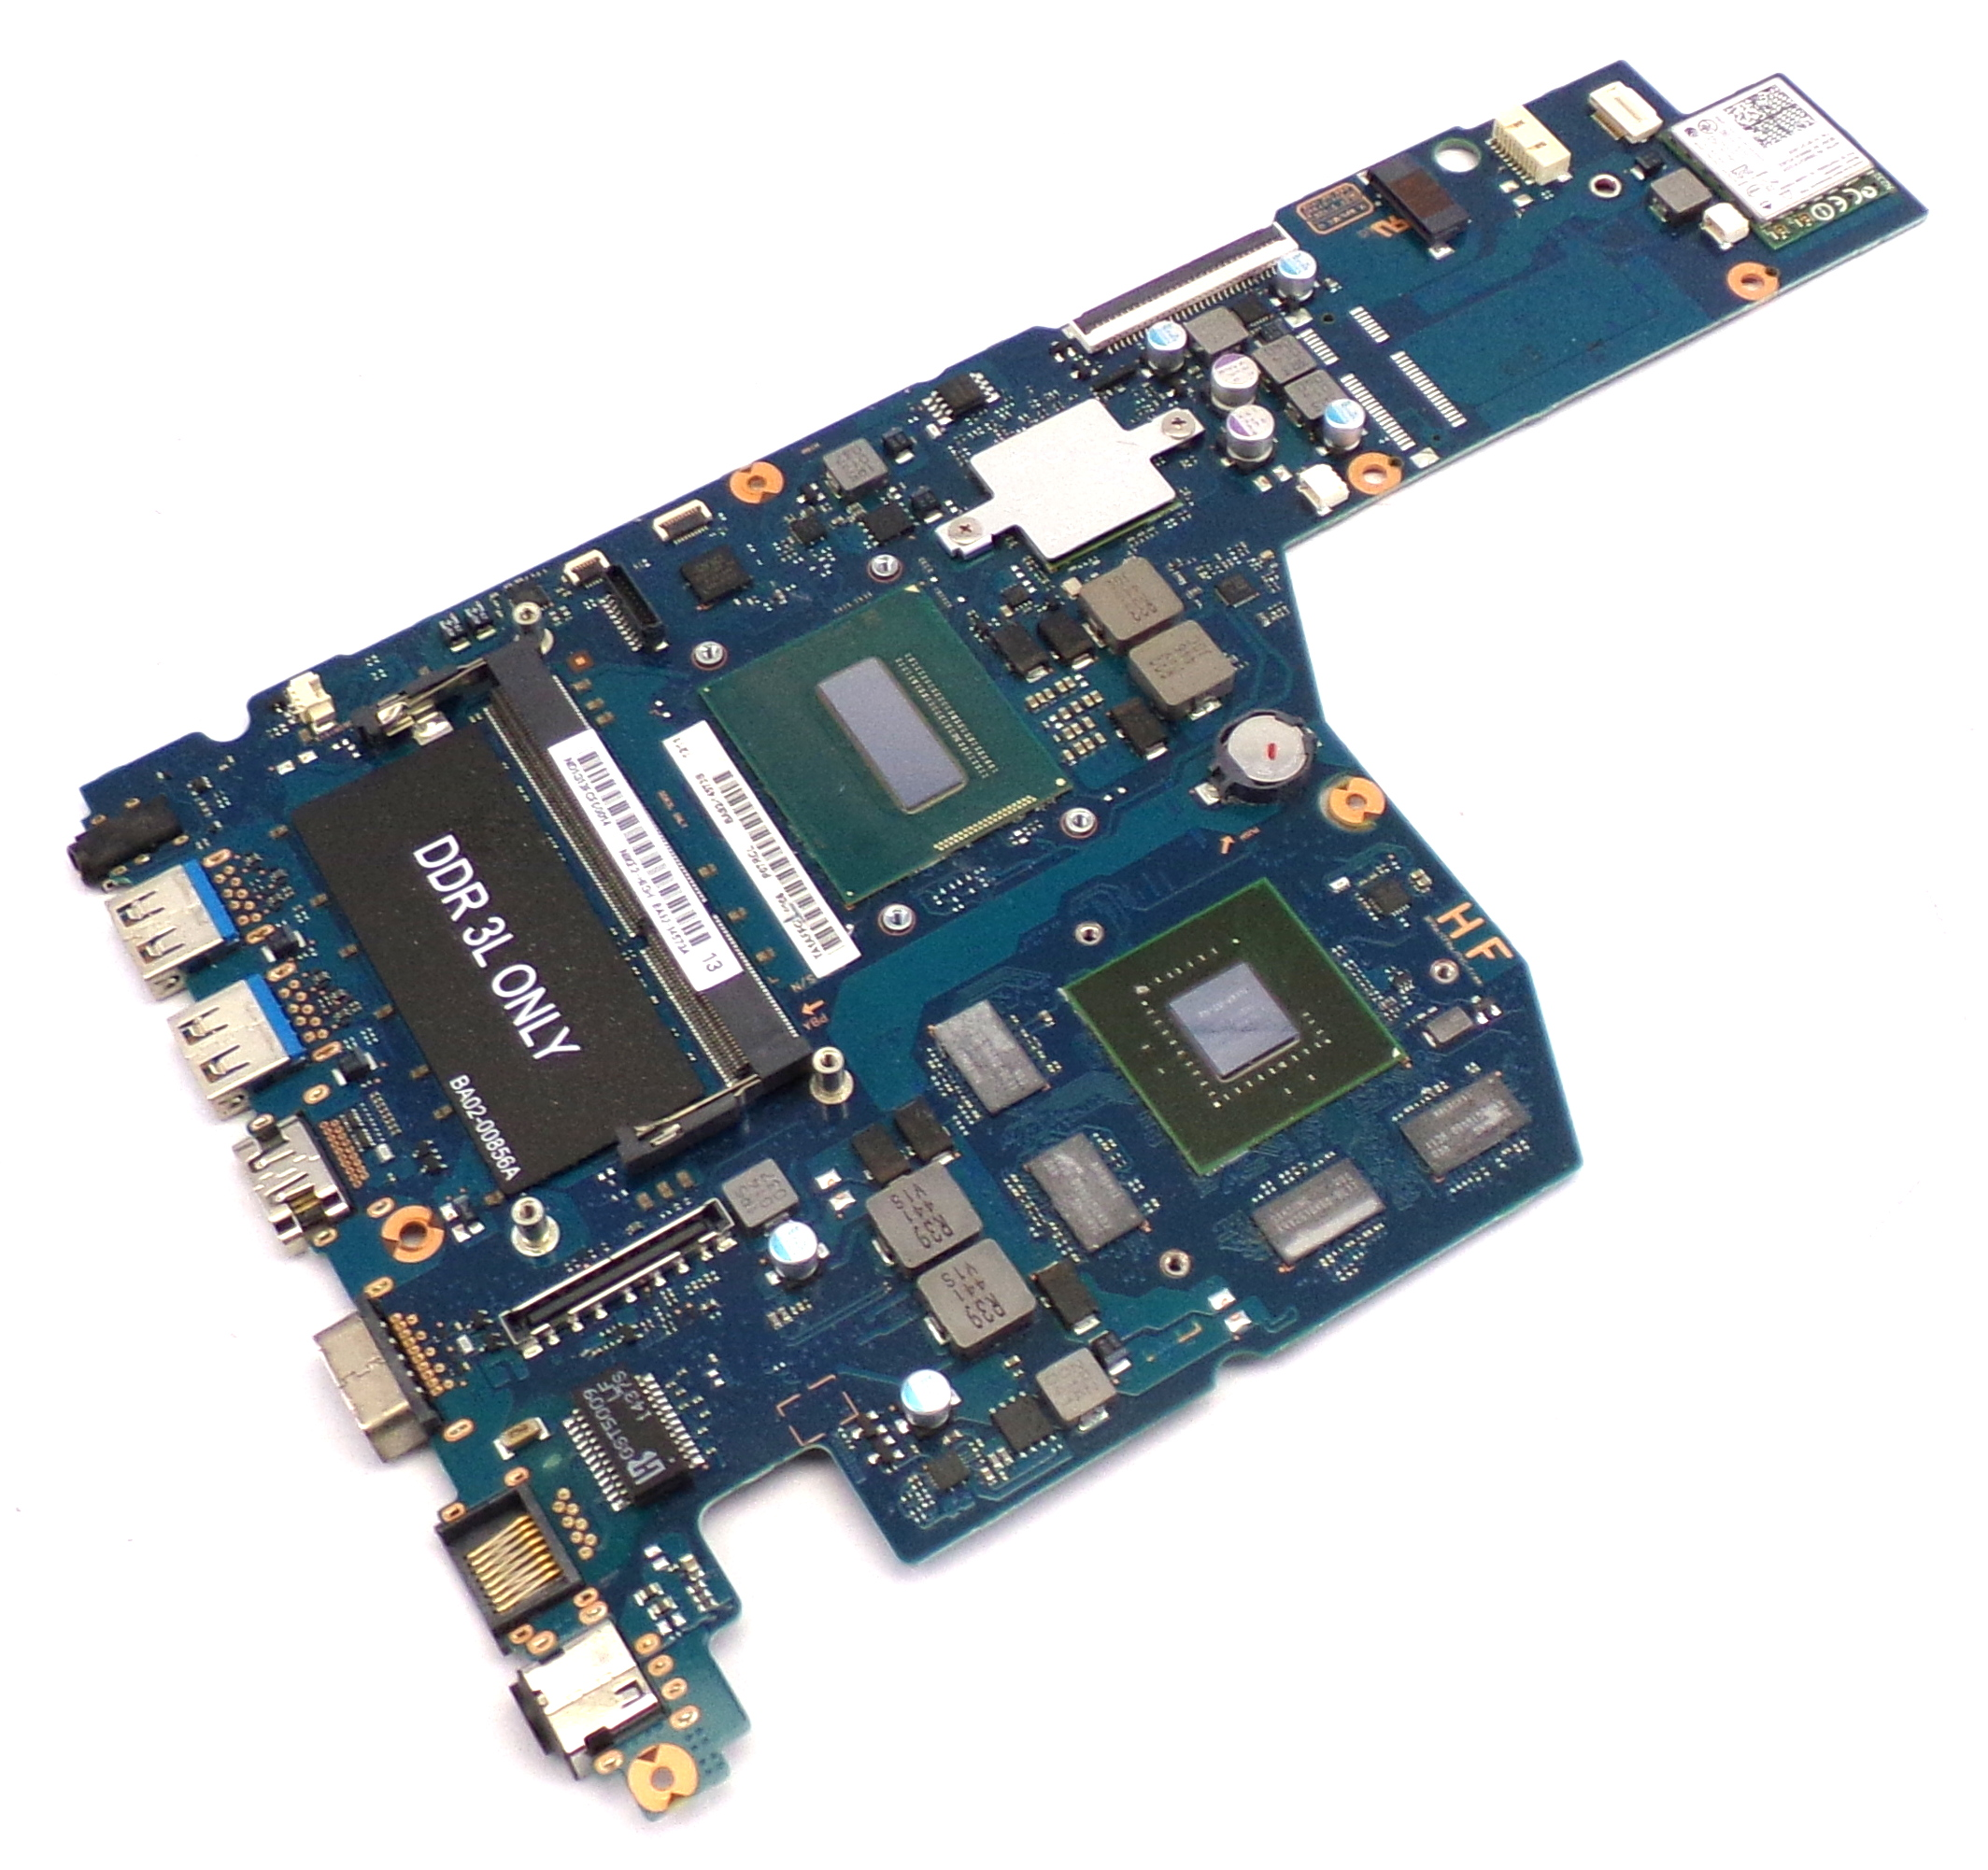 Samsung BA92-14573 NP870Z5G with Intel Core i7-4710HQ Laptop Motherboard